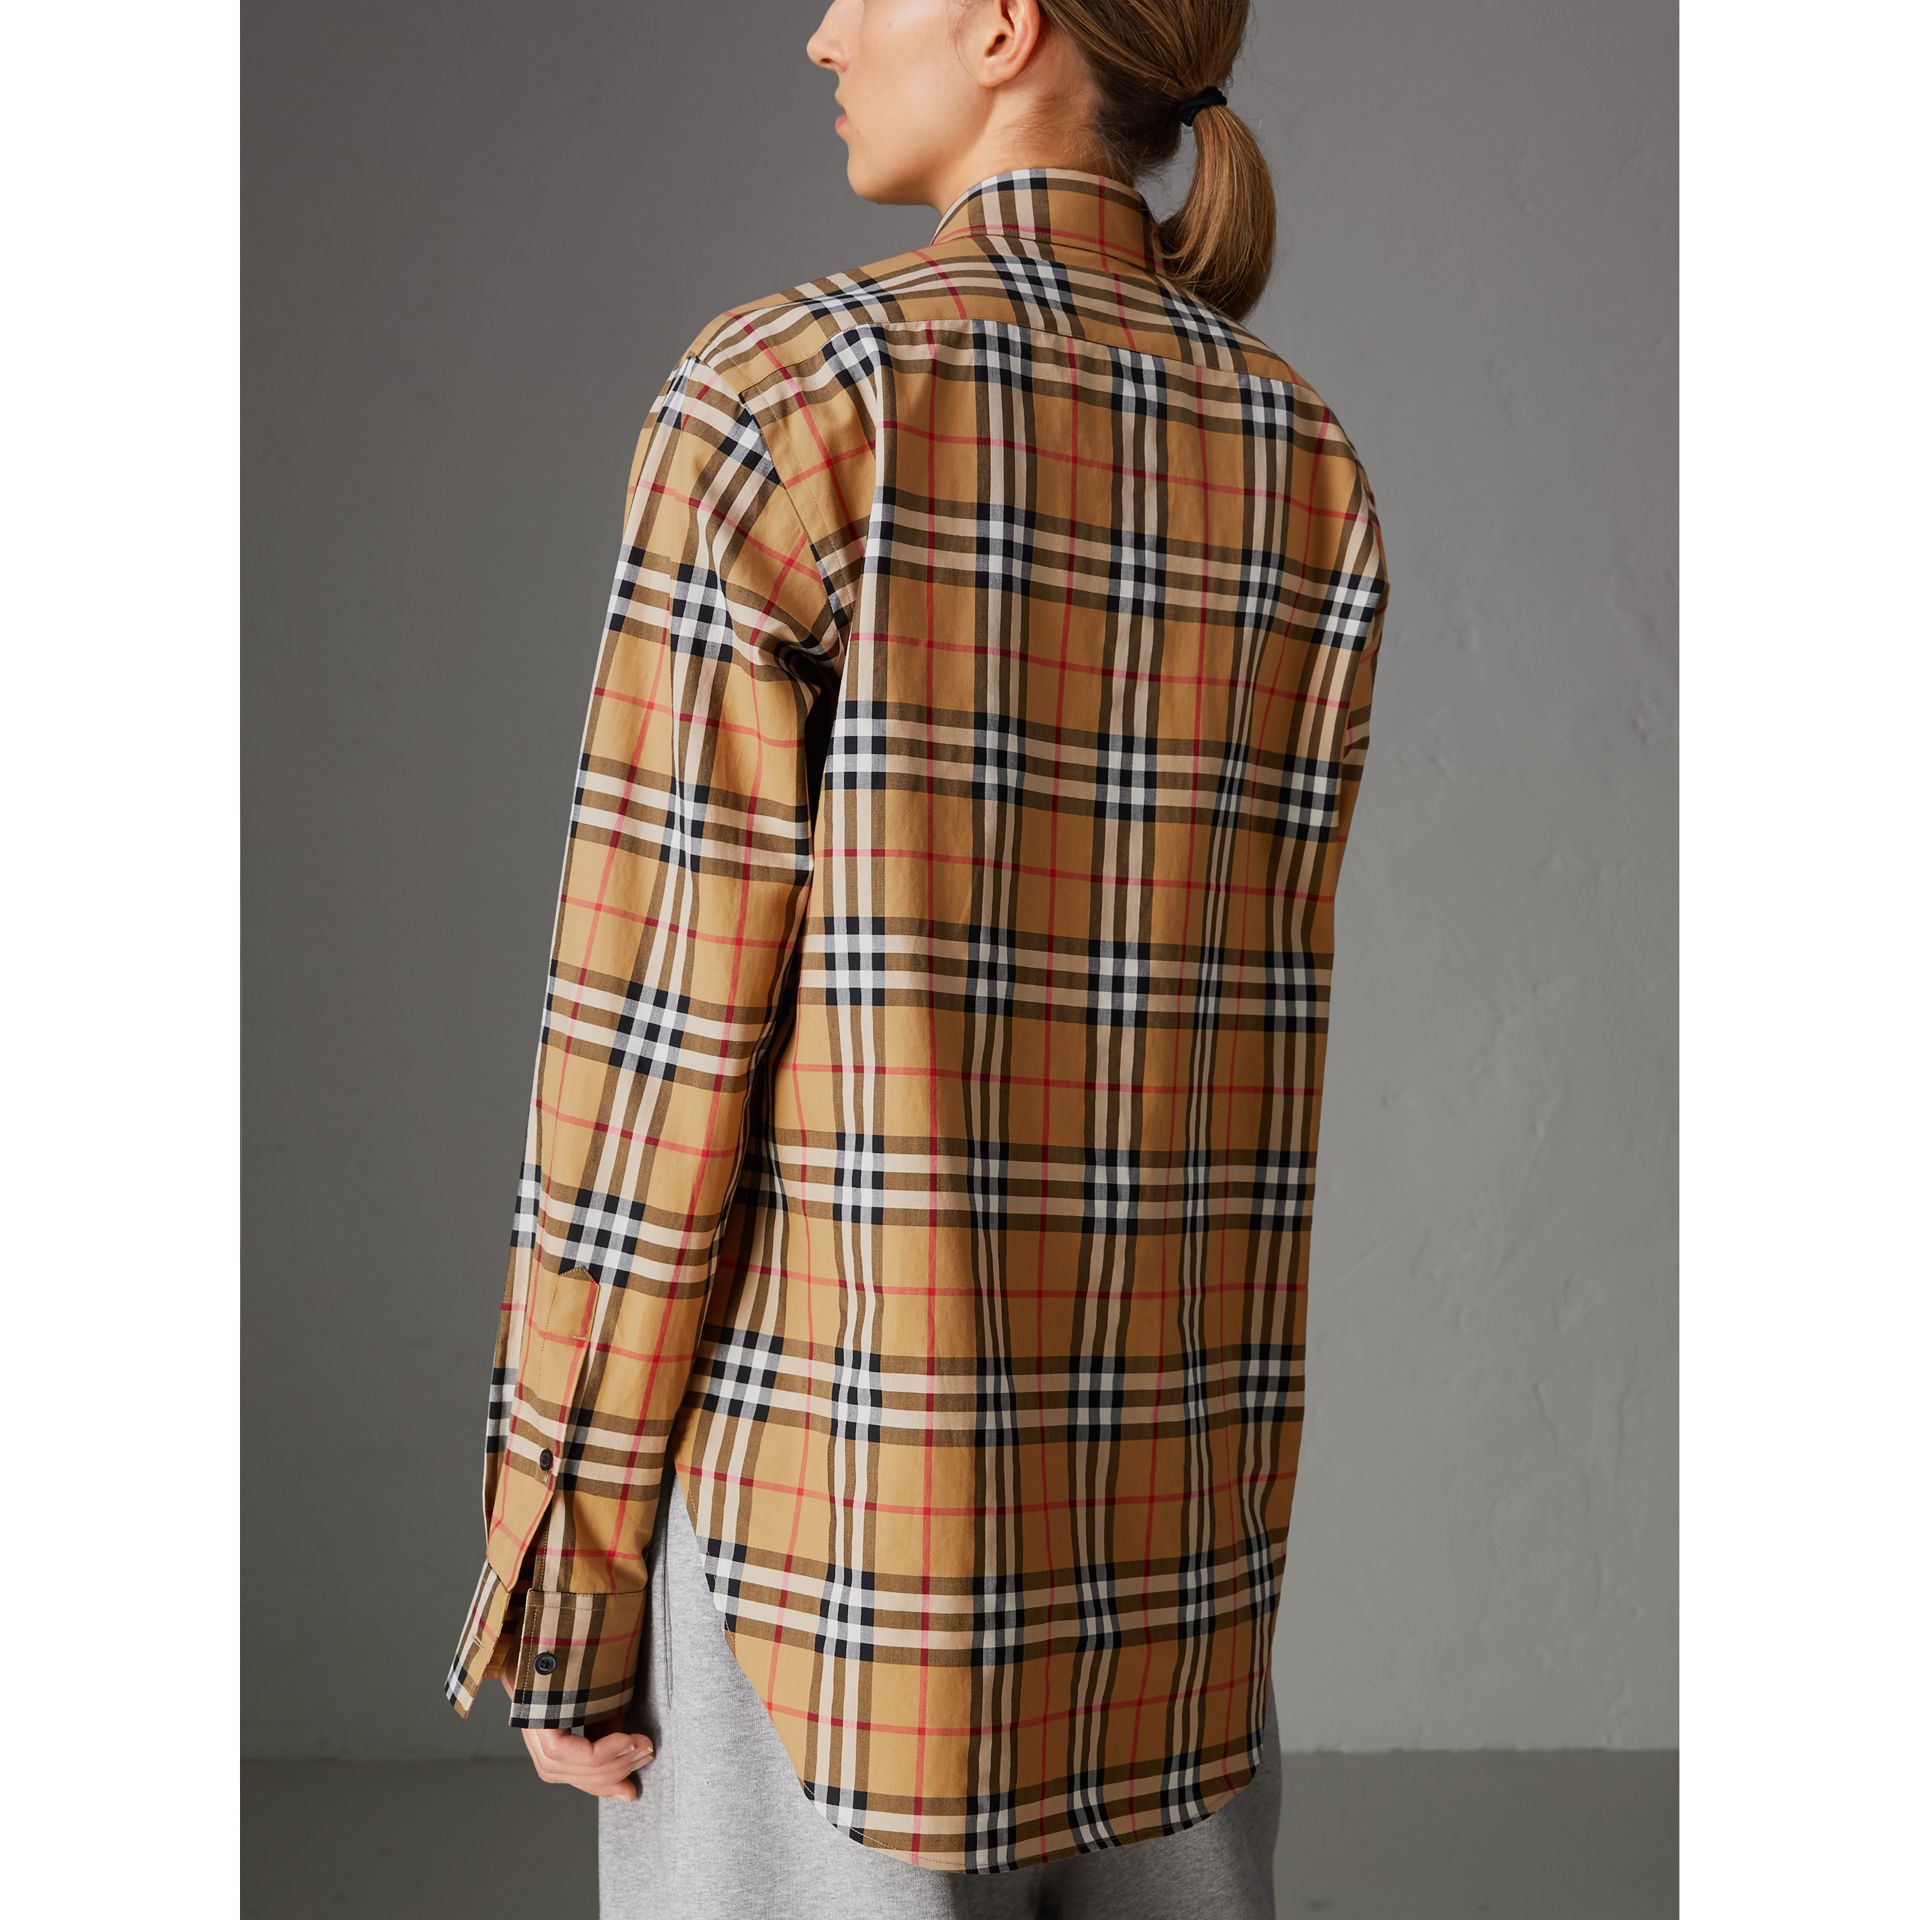 Rainbow Vintage Check Cotton Shirt in Antique Yellow - Women | Burberry United States - gallery image 2